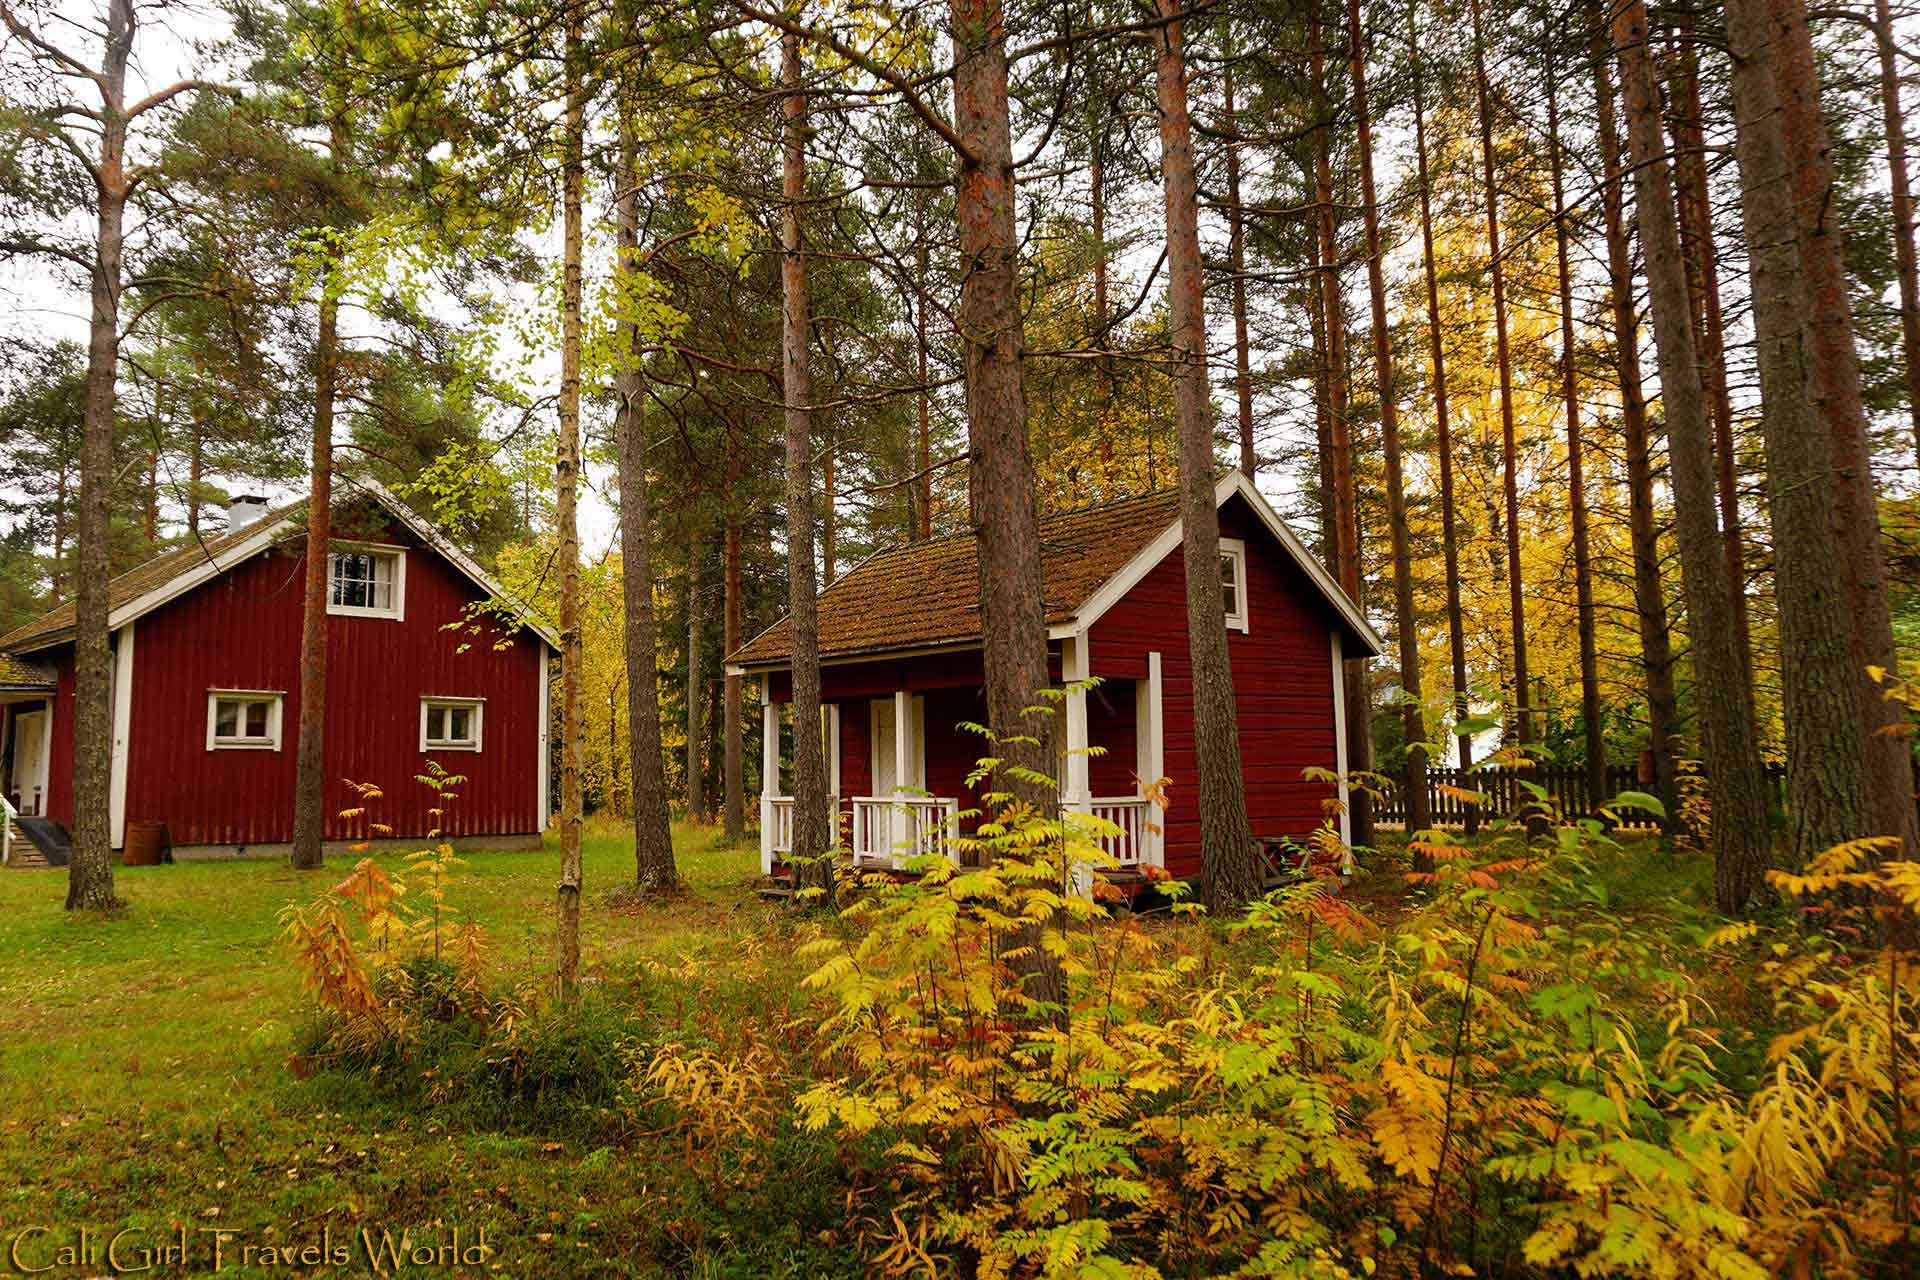 Two traditional ochre red buildings and homes that can be found throughout Finland.